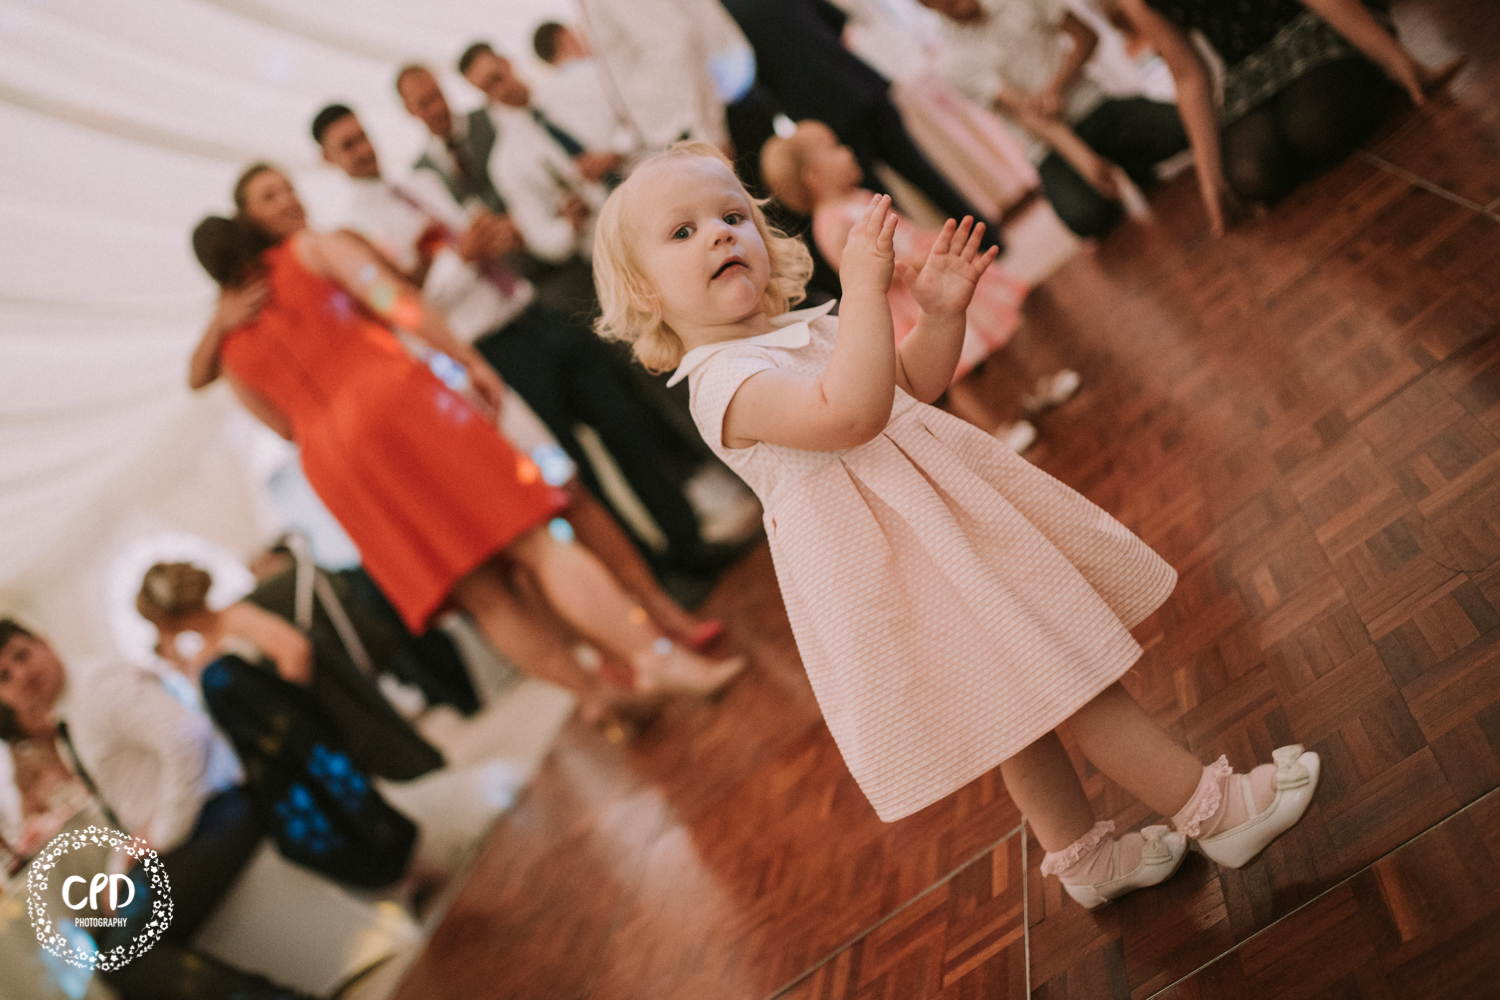 Little girl on the dance floor